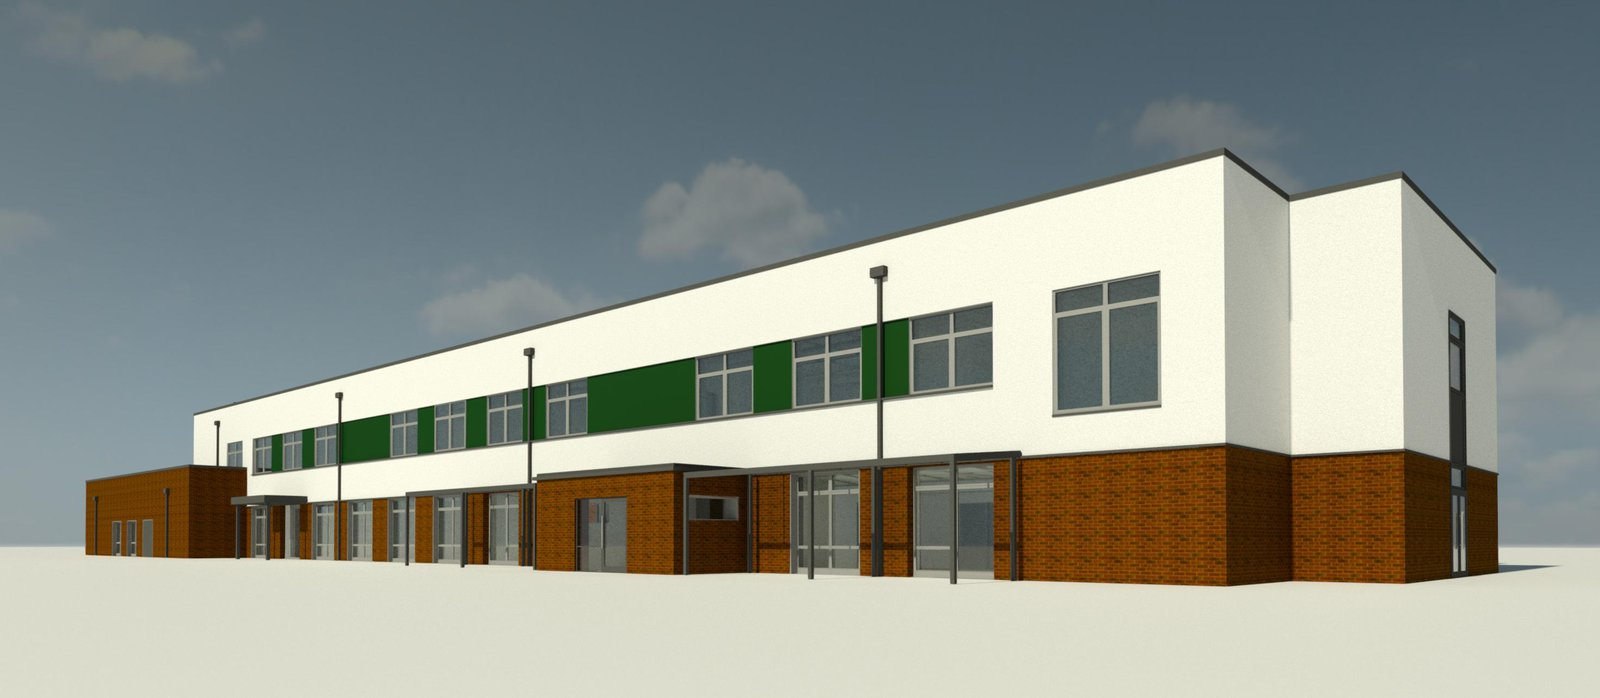 Image of the proposed Hethersett Primary School to be built by Morgan Sindall Construction